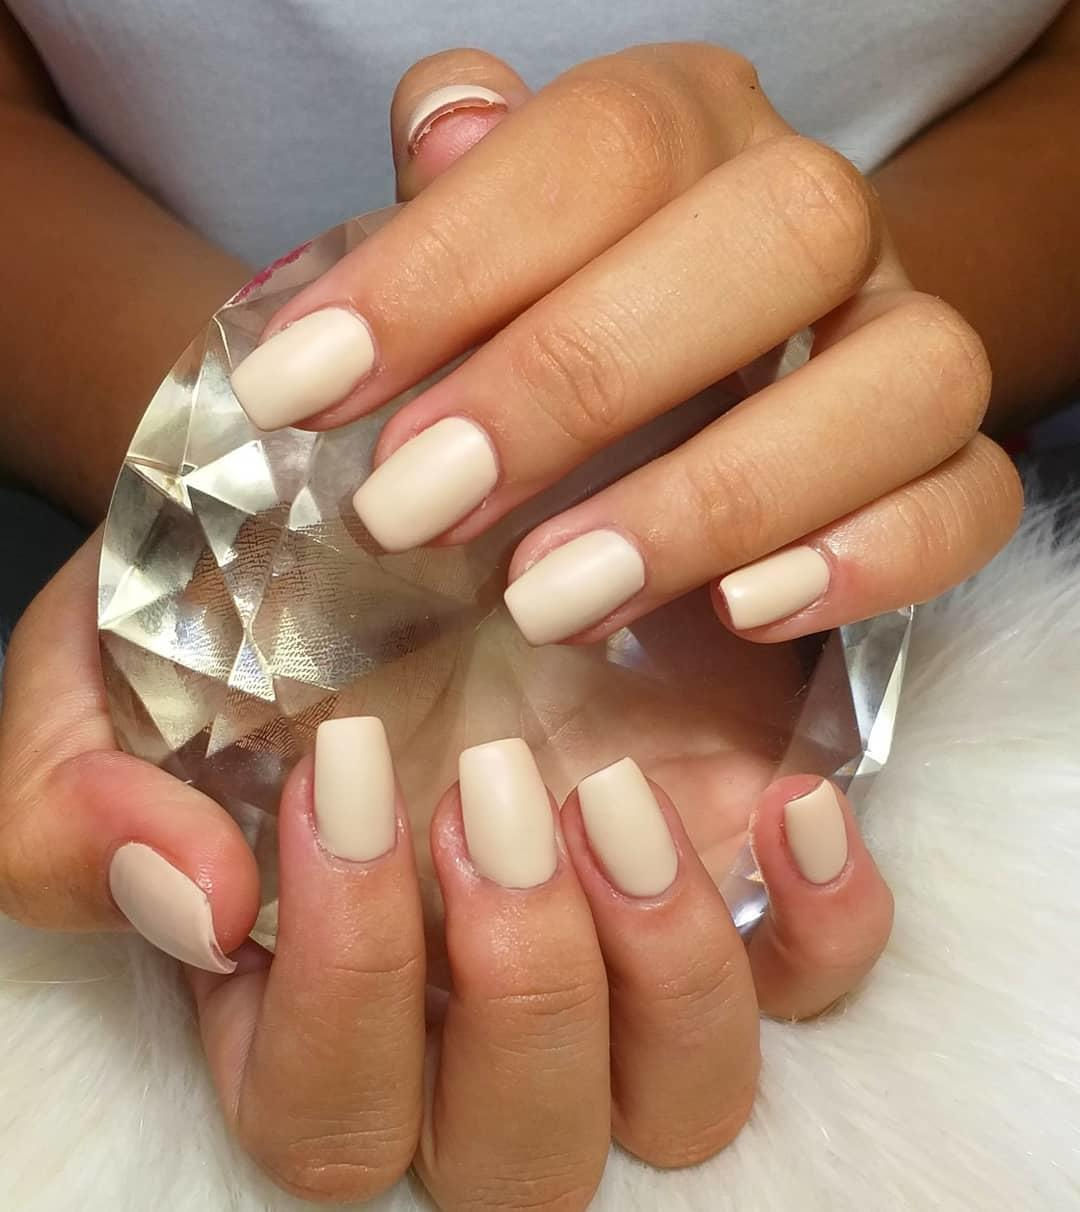 17 must see ideas for acrylic nail designs 2019 3 - 17 Must See Ideas forAcrylic Nail Designs 2019